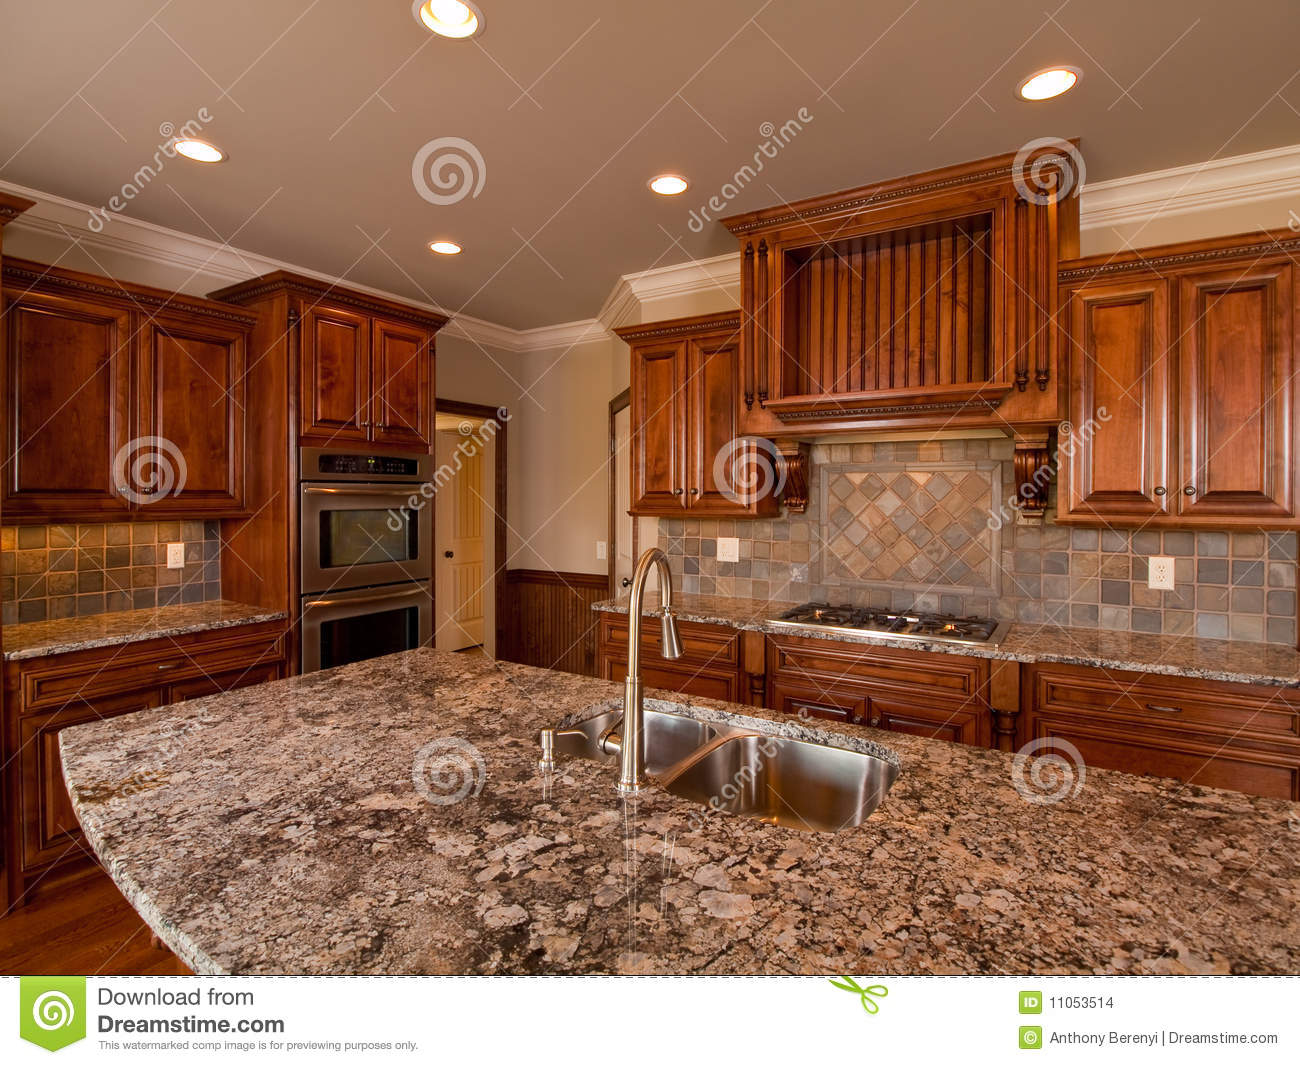 Clean Wood Kitchen Cabinets Luxury Home Dark Wood Kitchen With Countertop Stock Photo